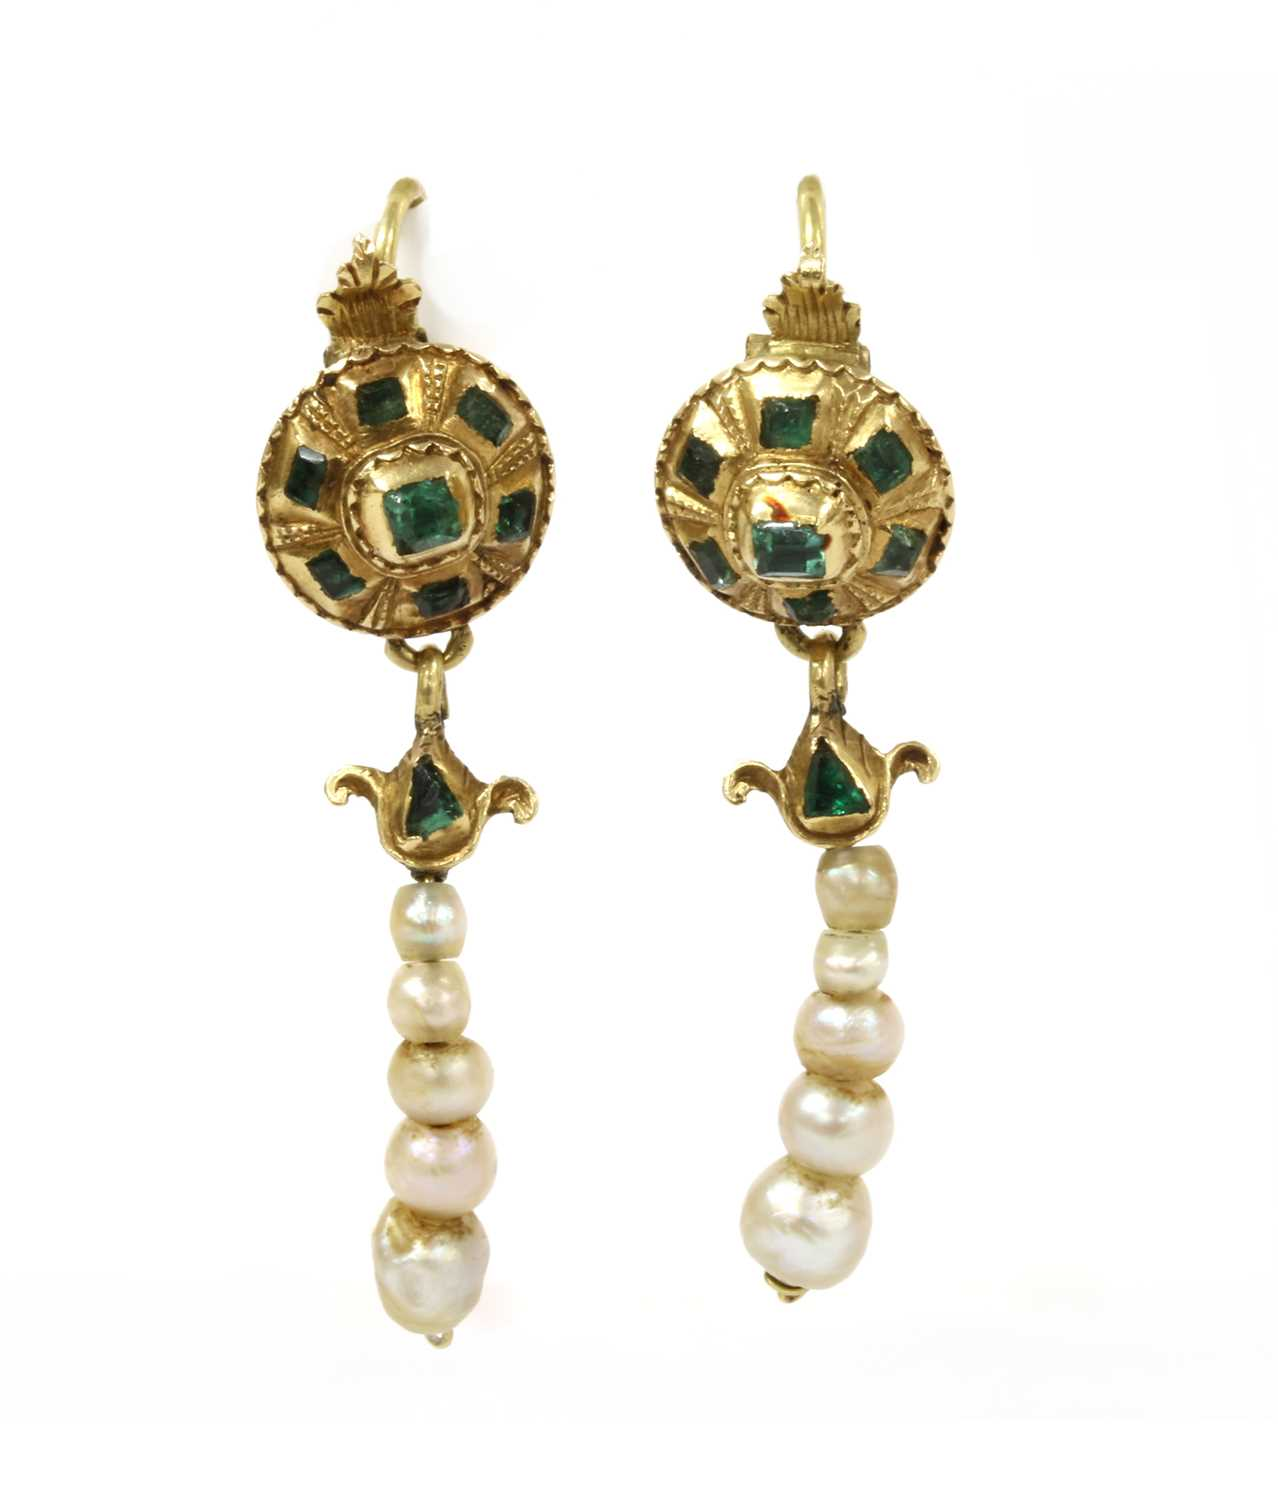 Lot 2 - A pair of Continental gold emerald and pearl drop earrings